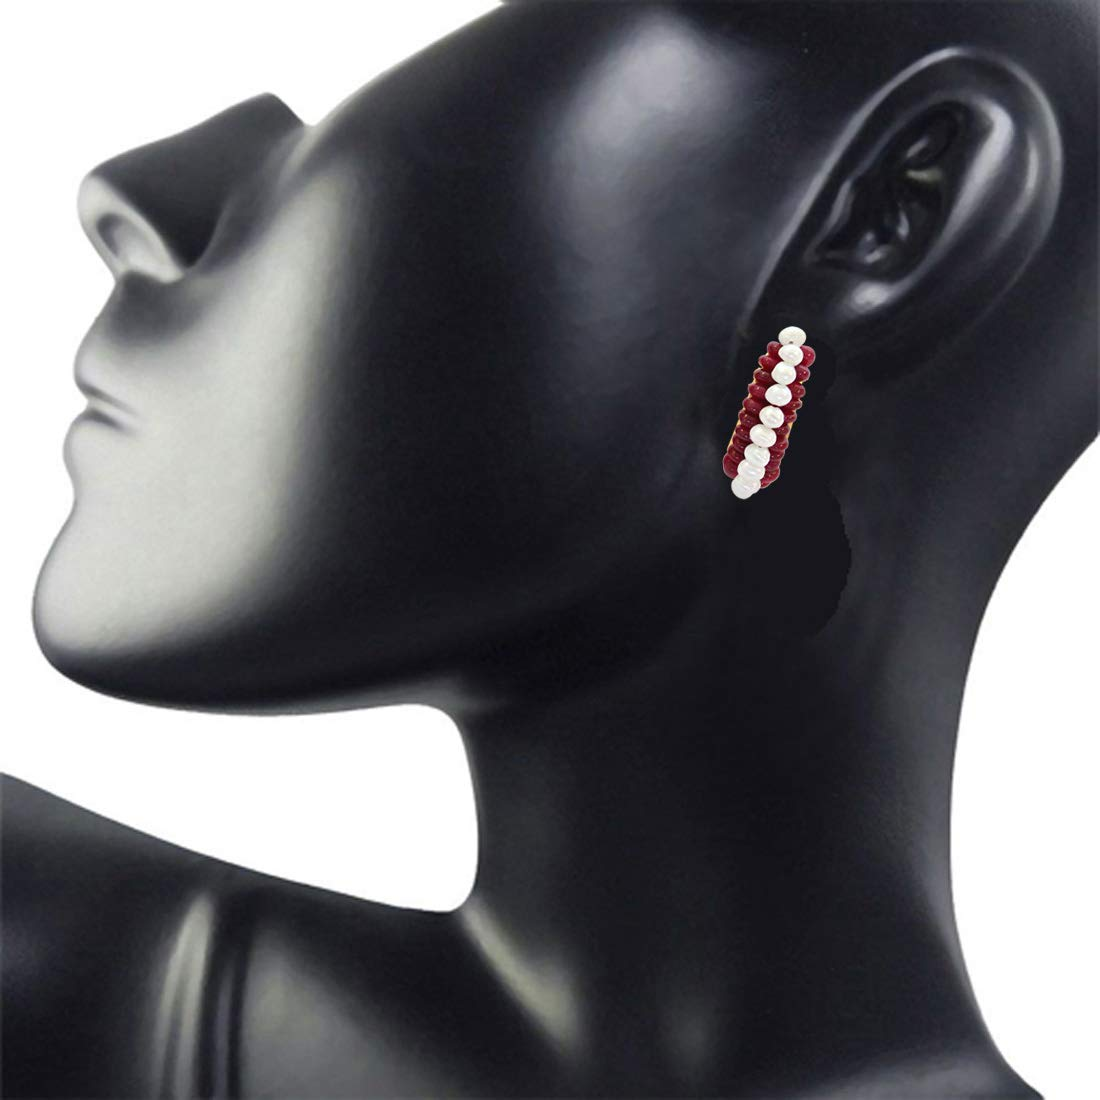 We are Forever - Real Ruby Beads & Freshwater Pearl Bali Style Earrings for Women (SE79)